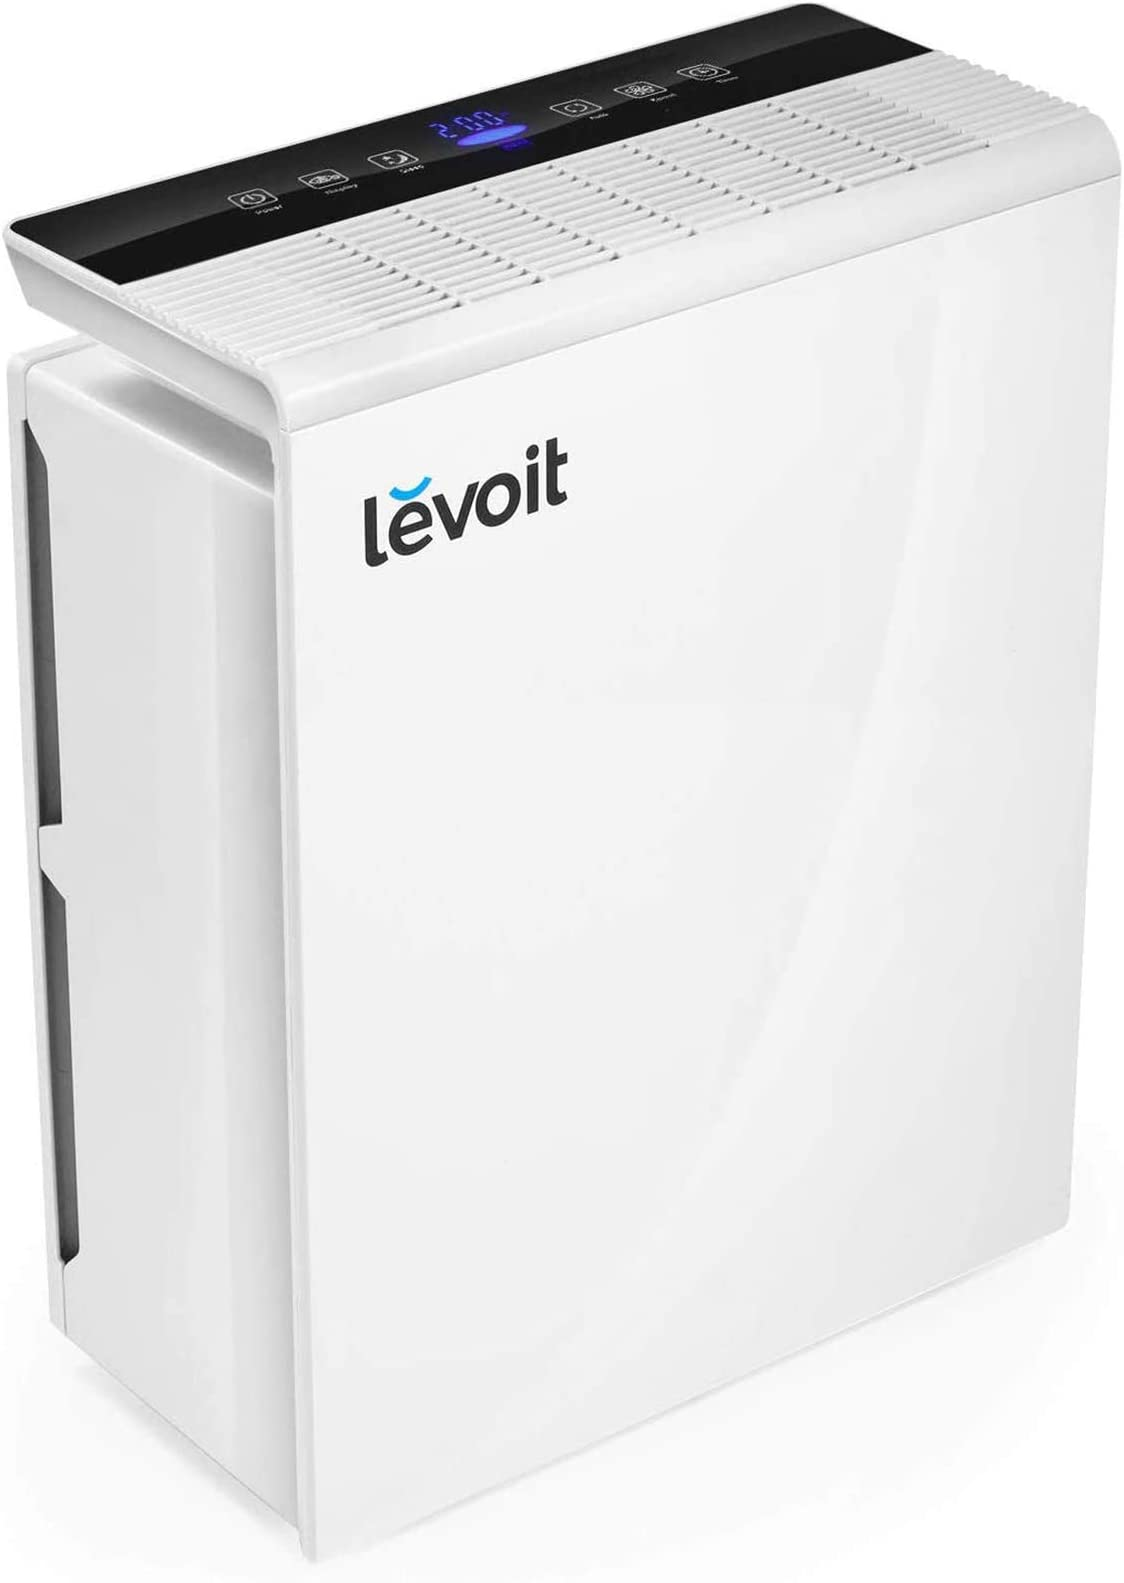 LEVOIT Air Purifier for Home Large Room,Smoke and Odor Eliminator, H13 True HEPA Filter for Bedroom, Auto Mode & 12h Timer, Cleaners for Allergies and Pets, Mold Pollen Dust, LV-PUR131, White